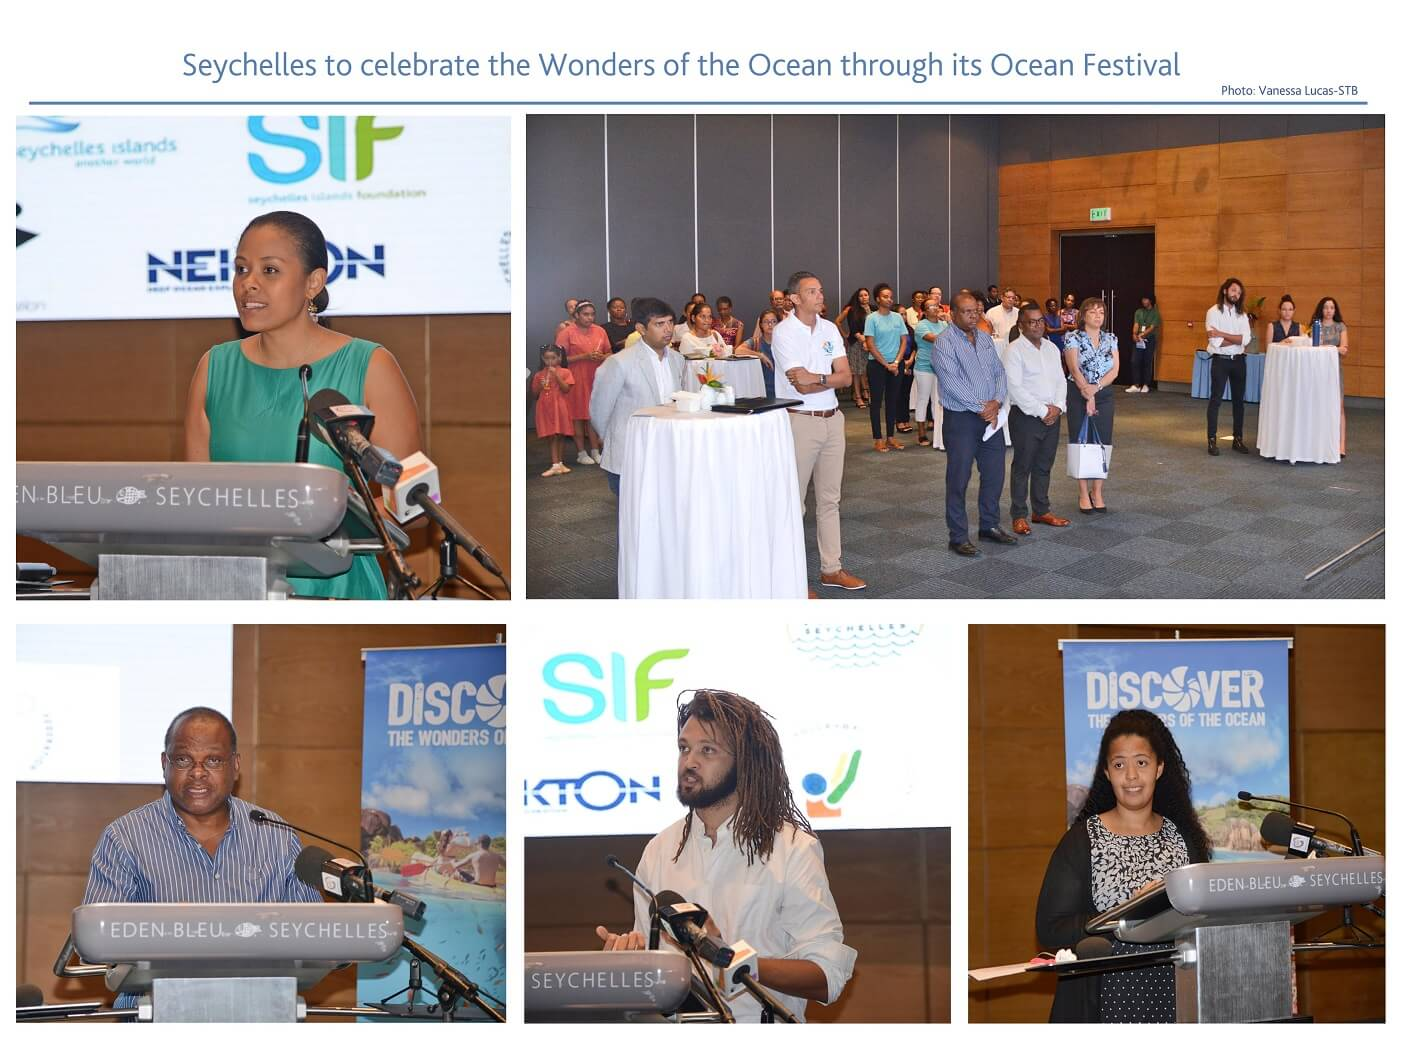 Seychelles to celebrate the Wonders of the Ocean through its Ocean Festival